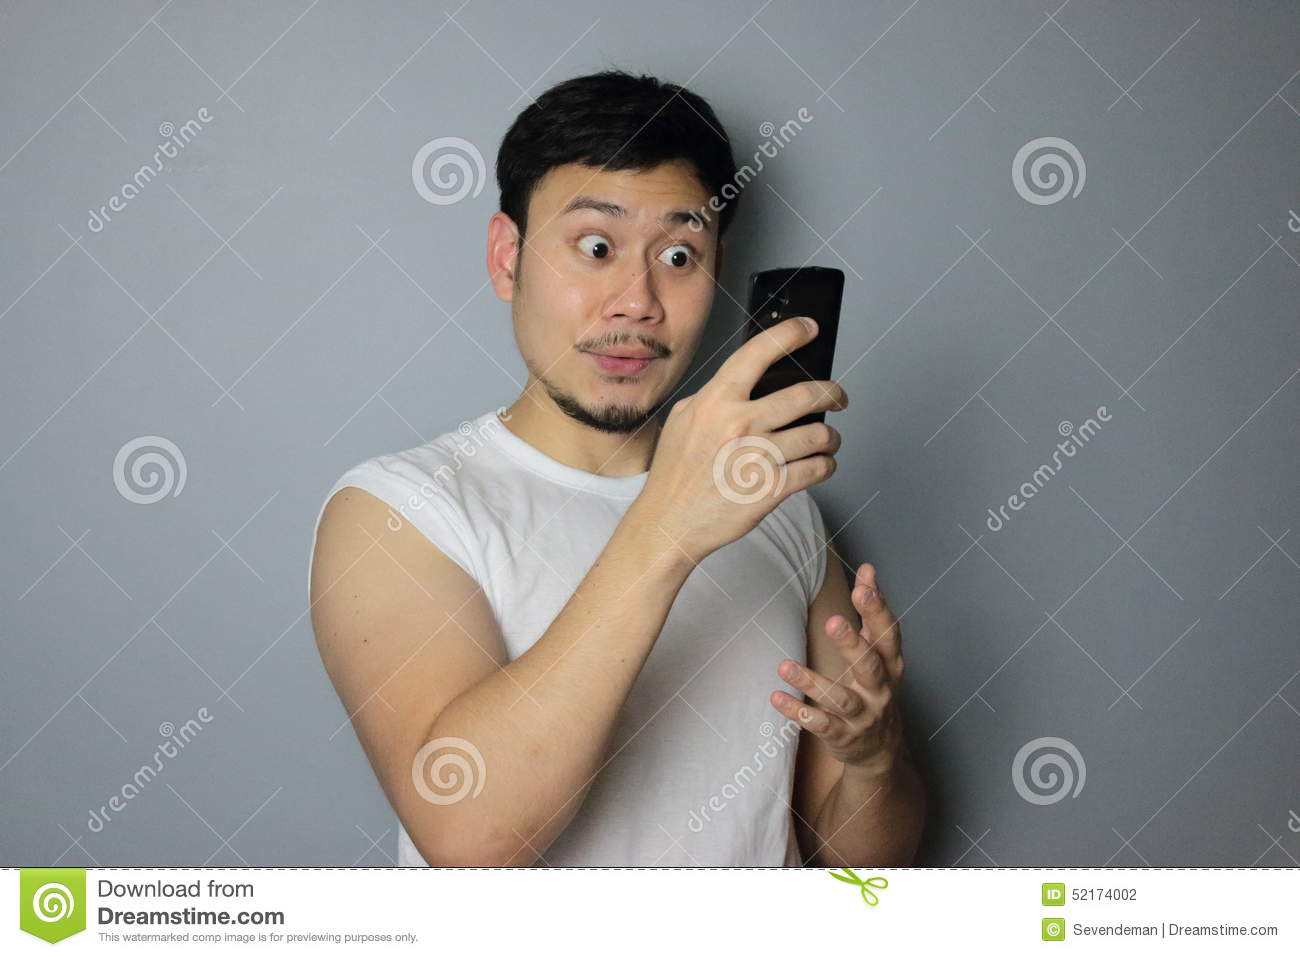 A man and mobile phone.